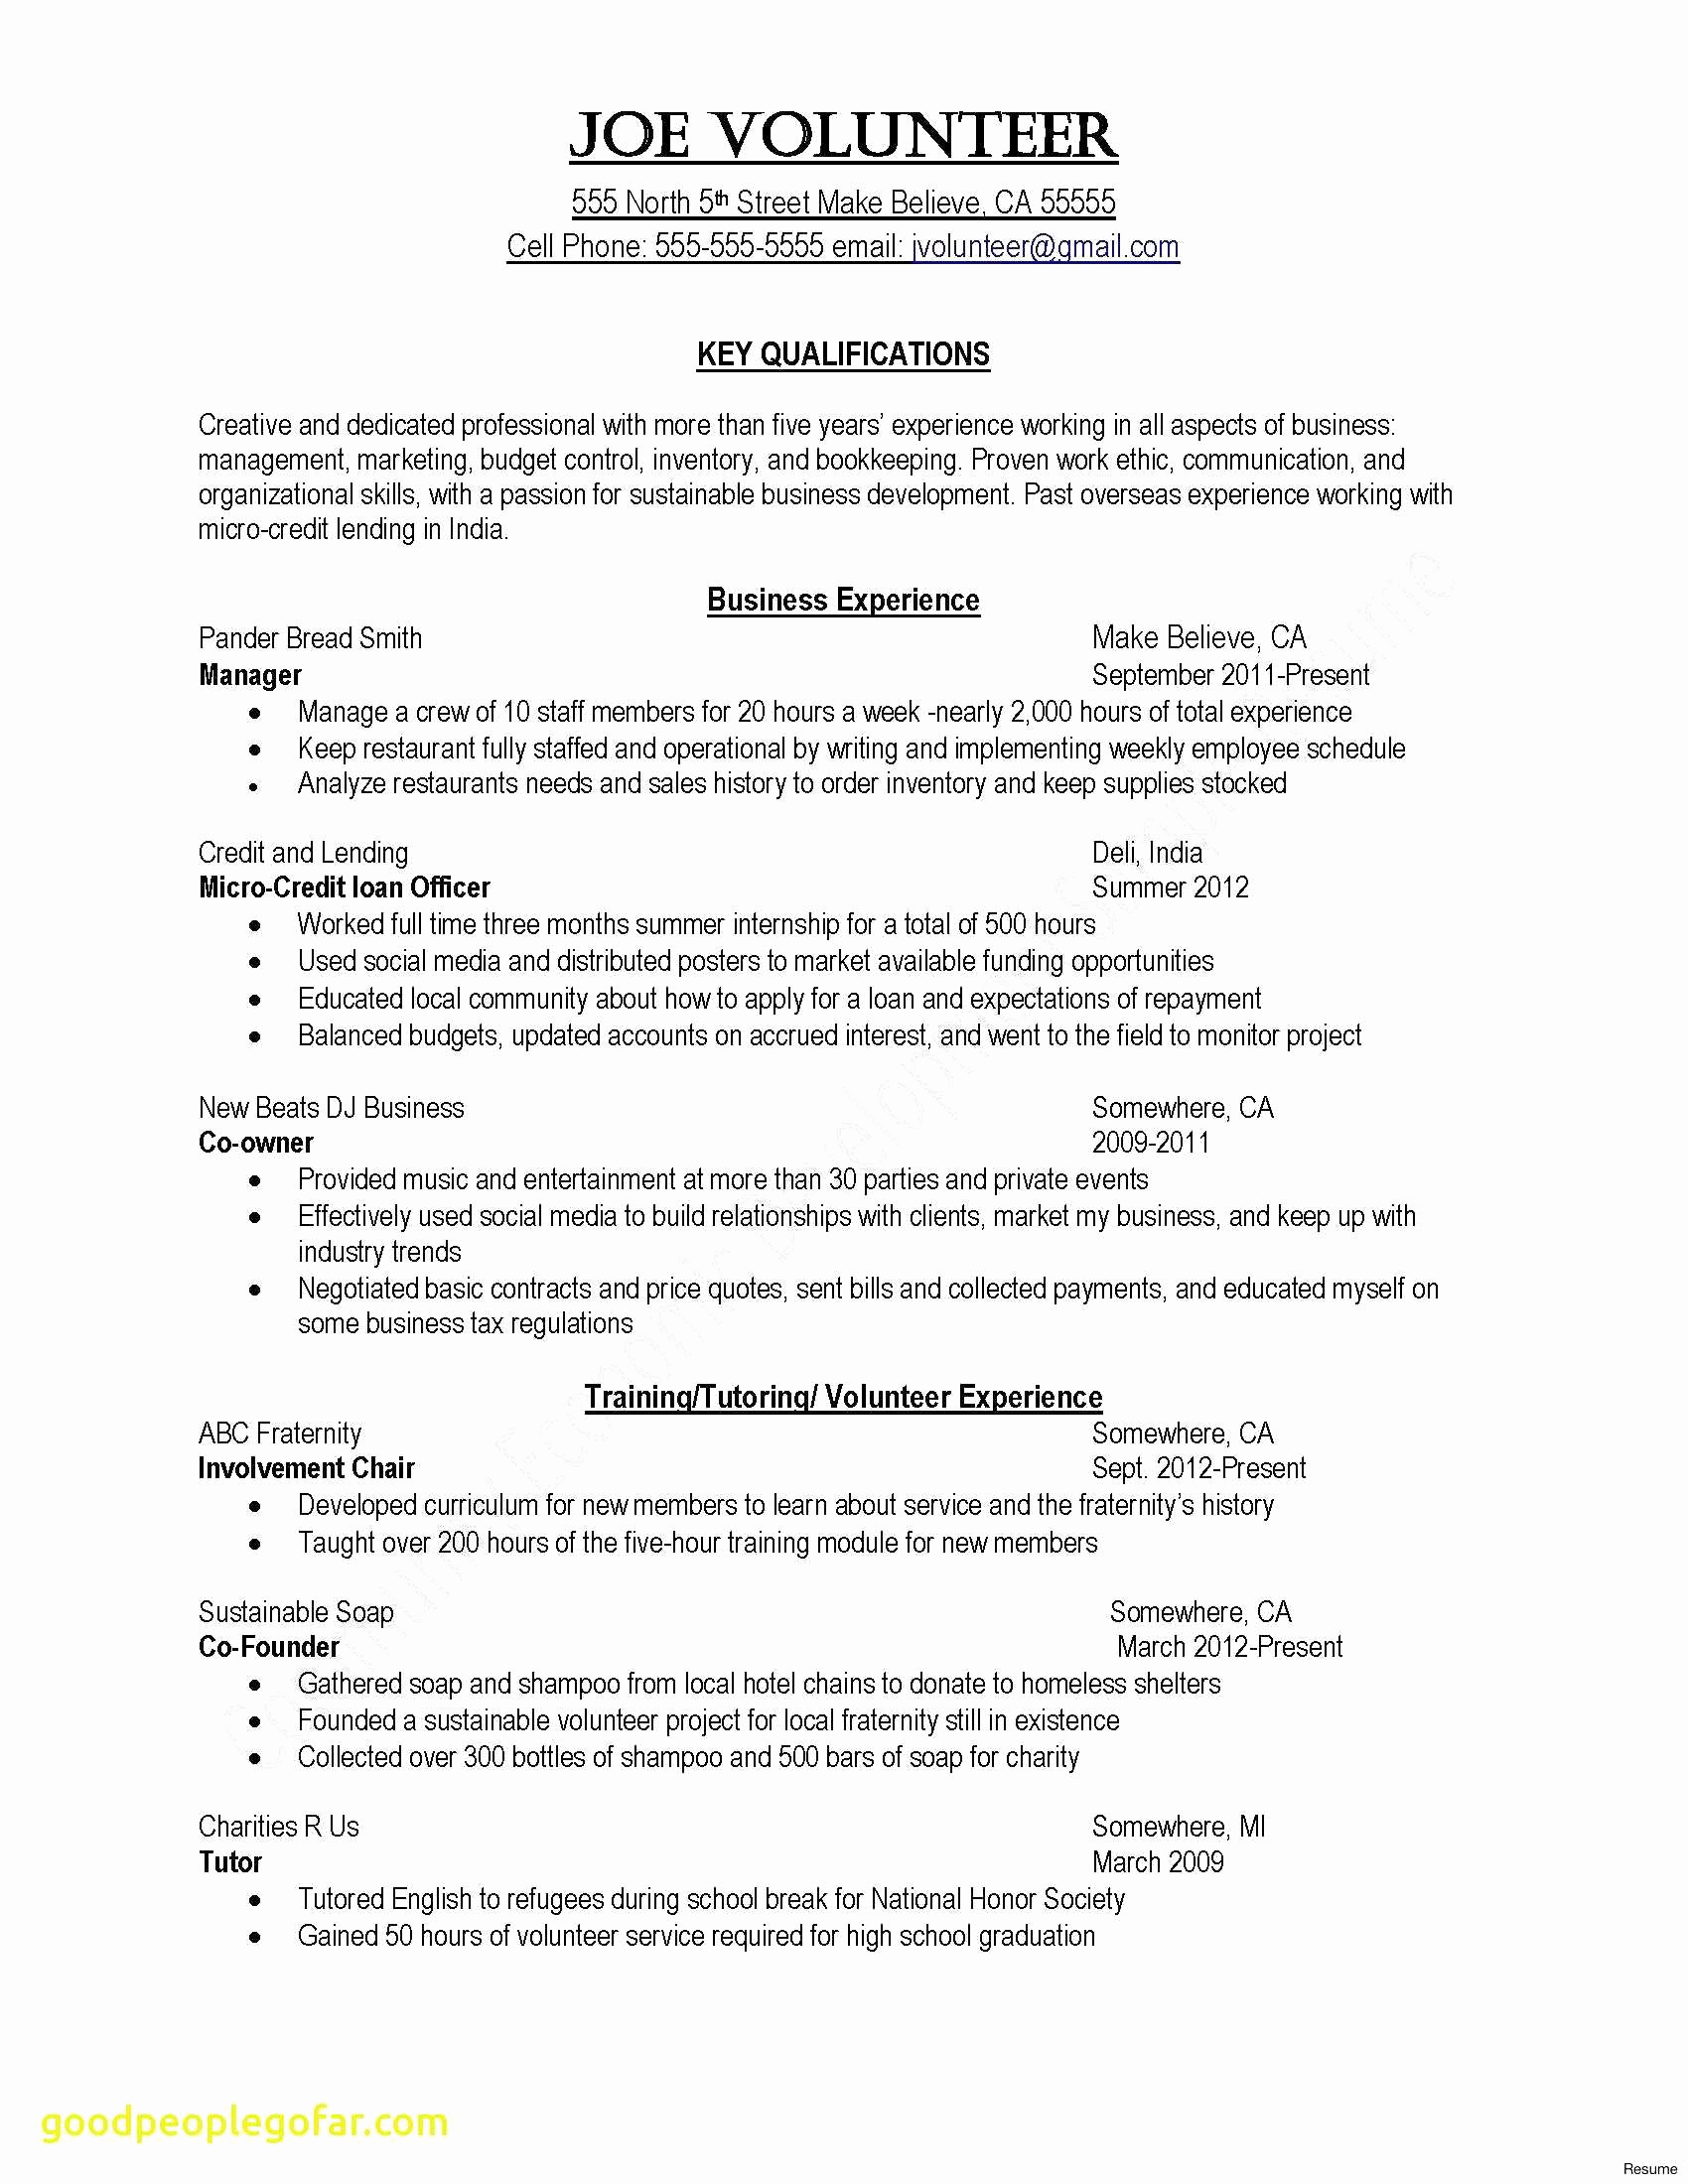 Office Equipment Skills - Fice Equipment List for Resume Beautiful Inspirational Resume